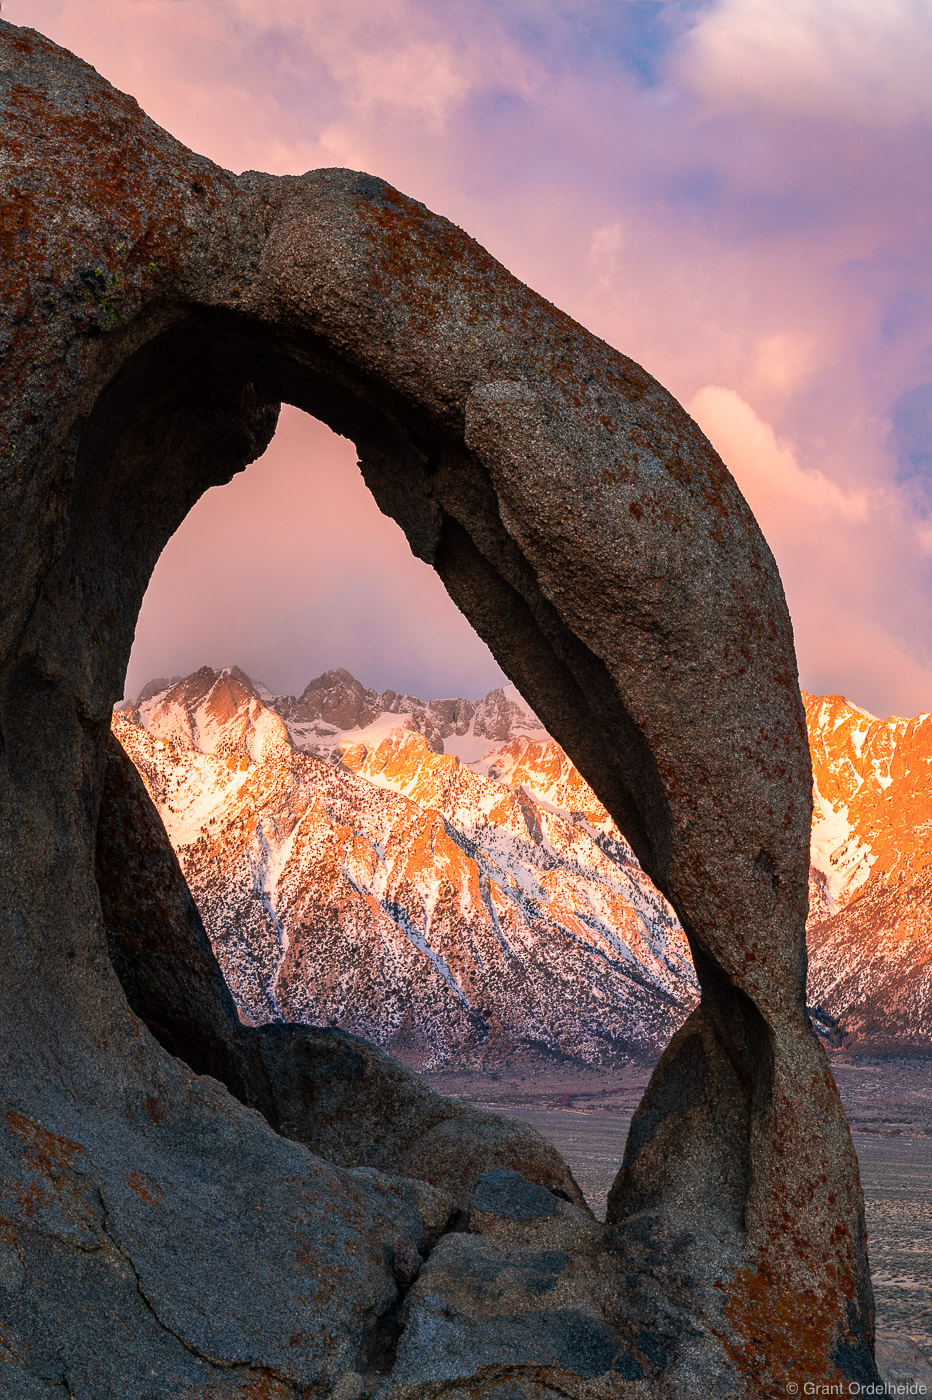 Sunrise over the Eastern Sierra and a remote arch in the Alabama Hills.